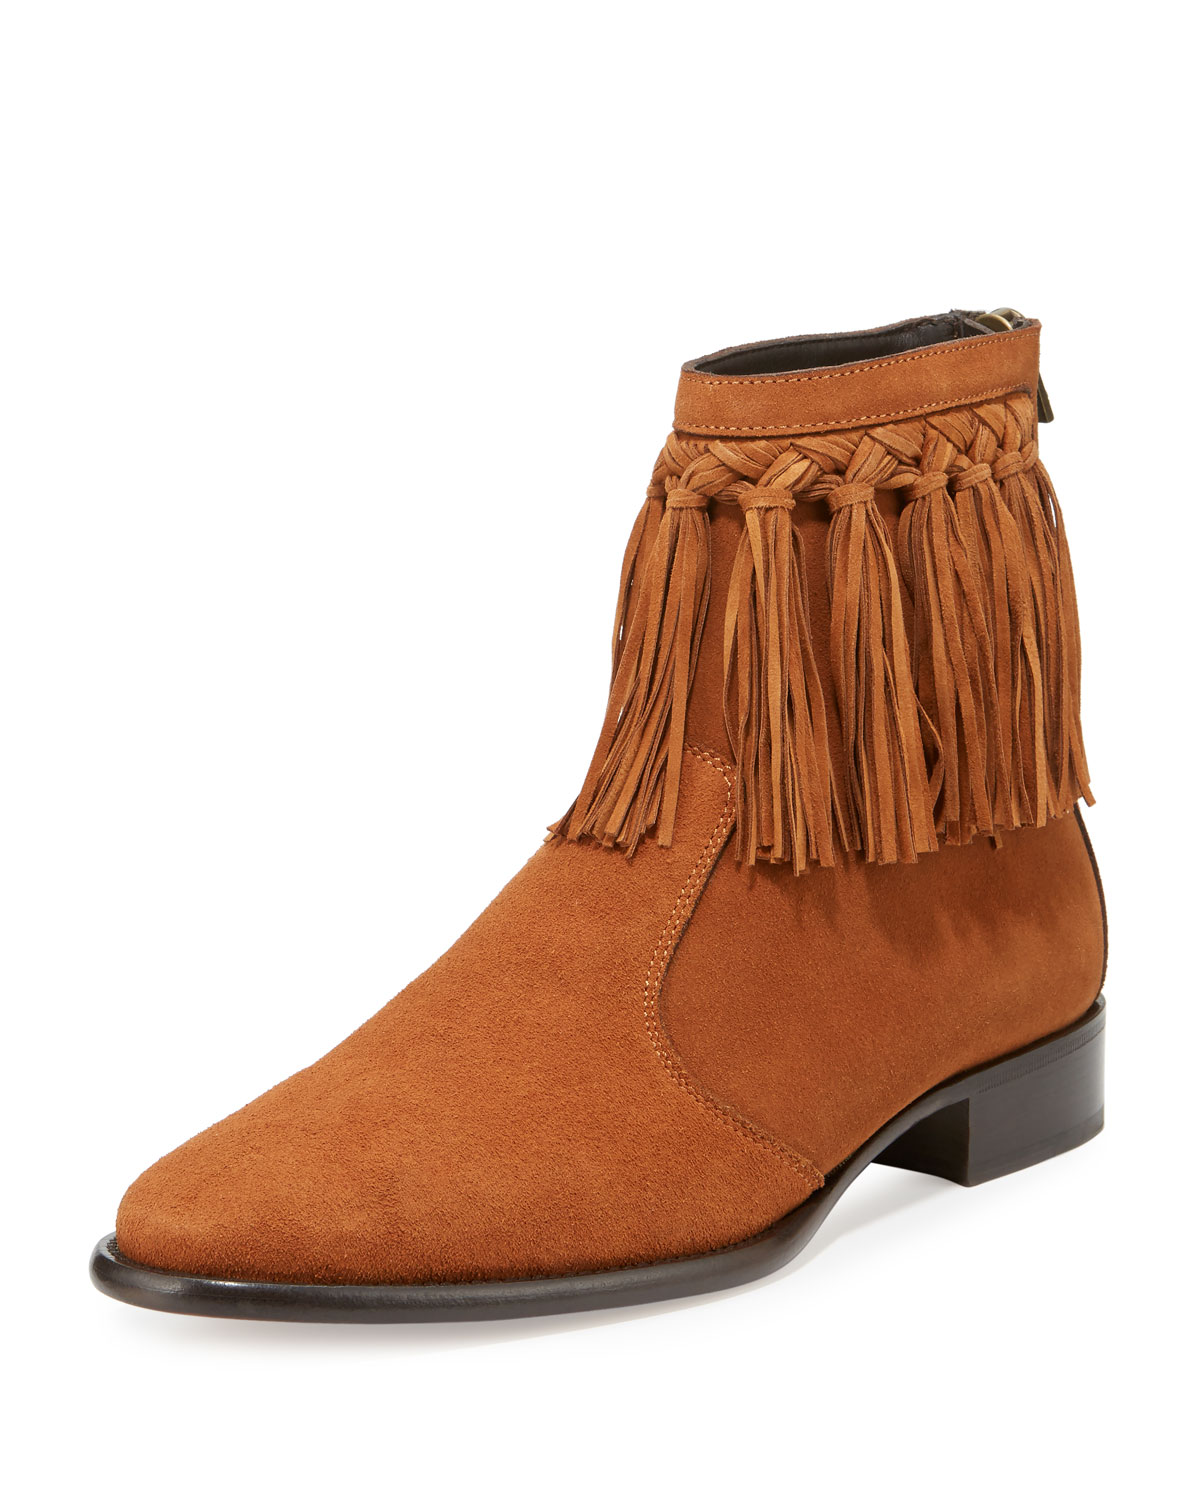 Jimmy Chooeric Men S Dry Suede Fringe Trim Ankle Boot Tan